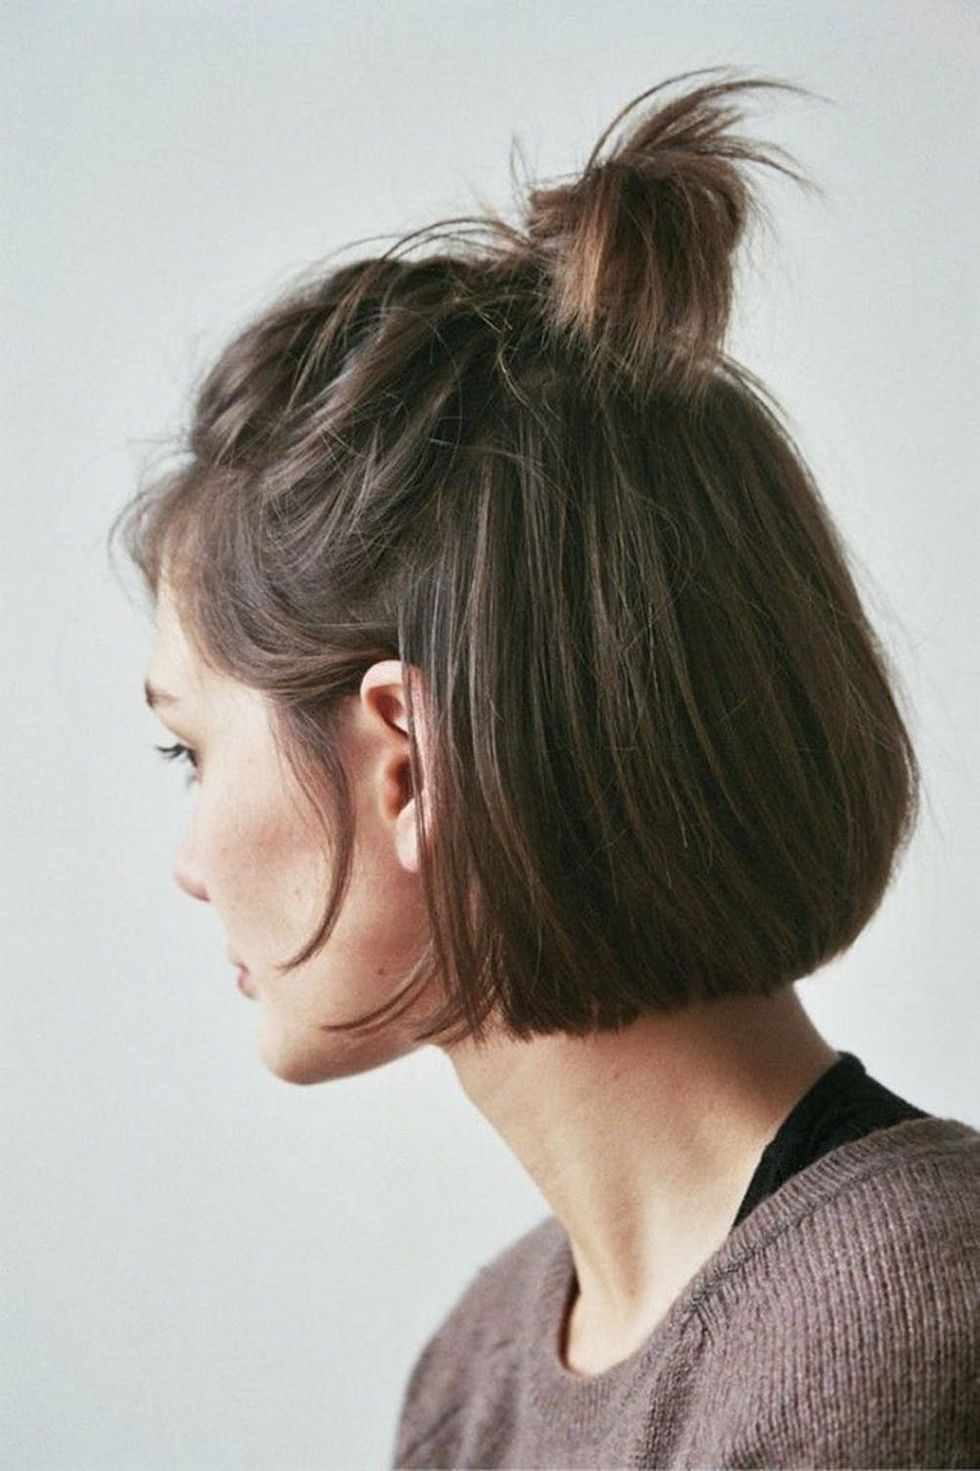 This Is Your Ultimate Short Hair Style Guide In 2020 Thick Hair Styles Medium Length Hair Styles Short Hair Styles